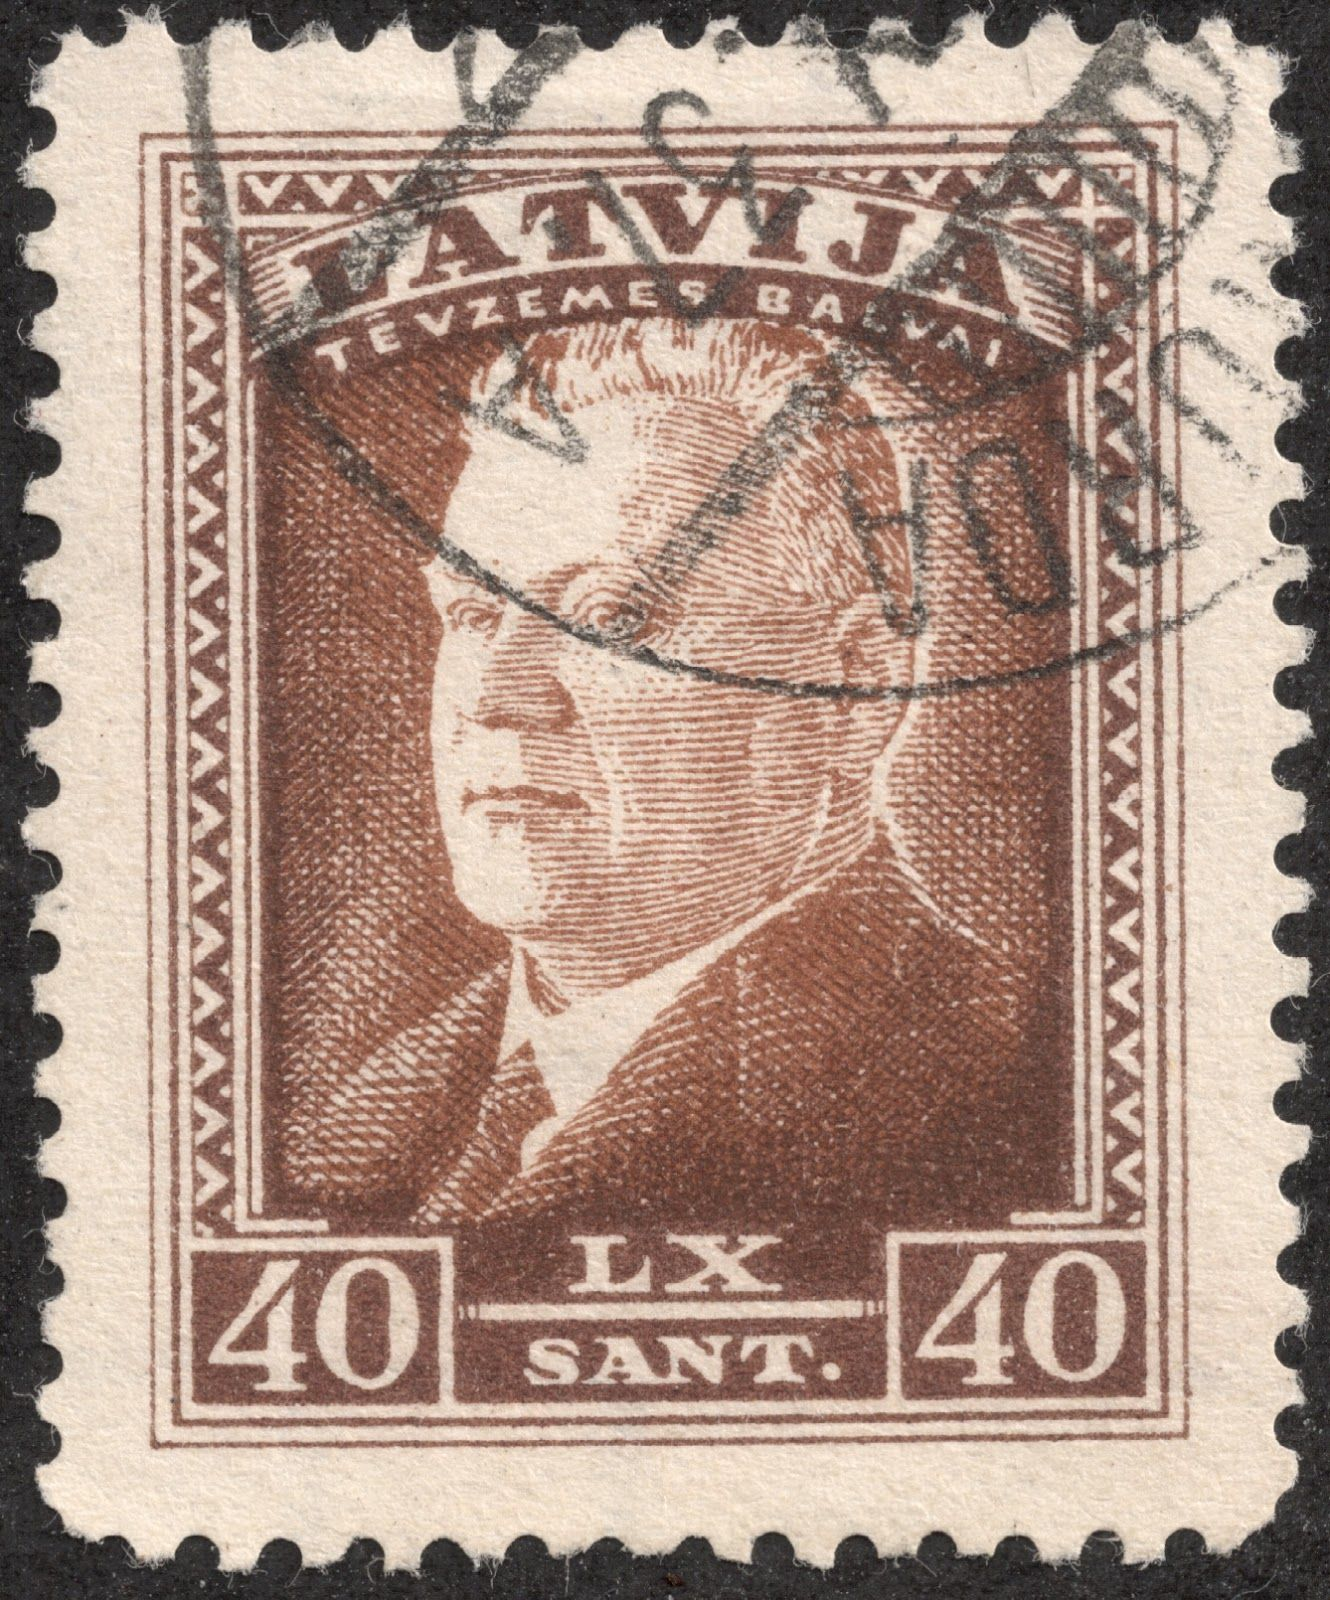 """Scan_Latvia 1937 Scott 191 40s light brown """"President Karlis Ulmanis"""" In 1937, a nine stamp set was released with a portrait of President Ulmanis, in honor of his 60th birthday."""